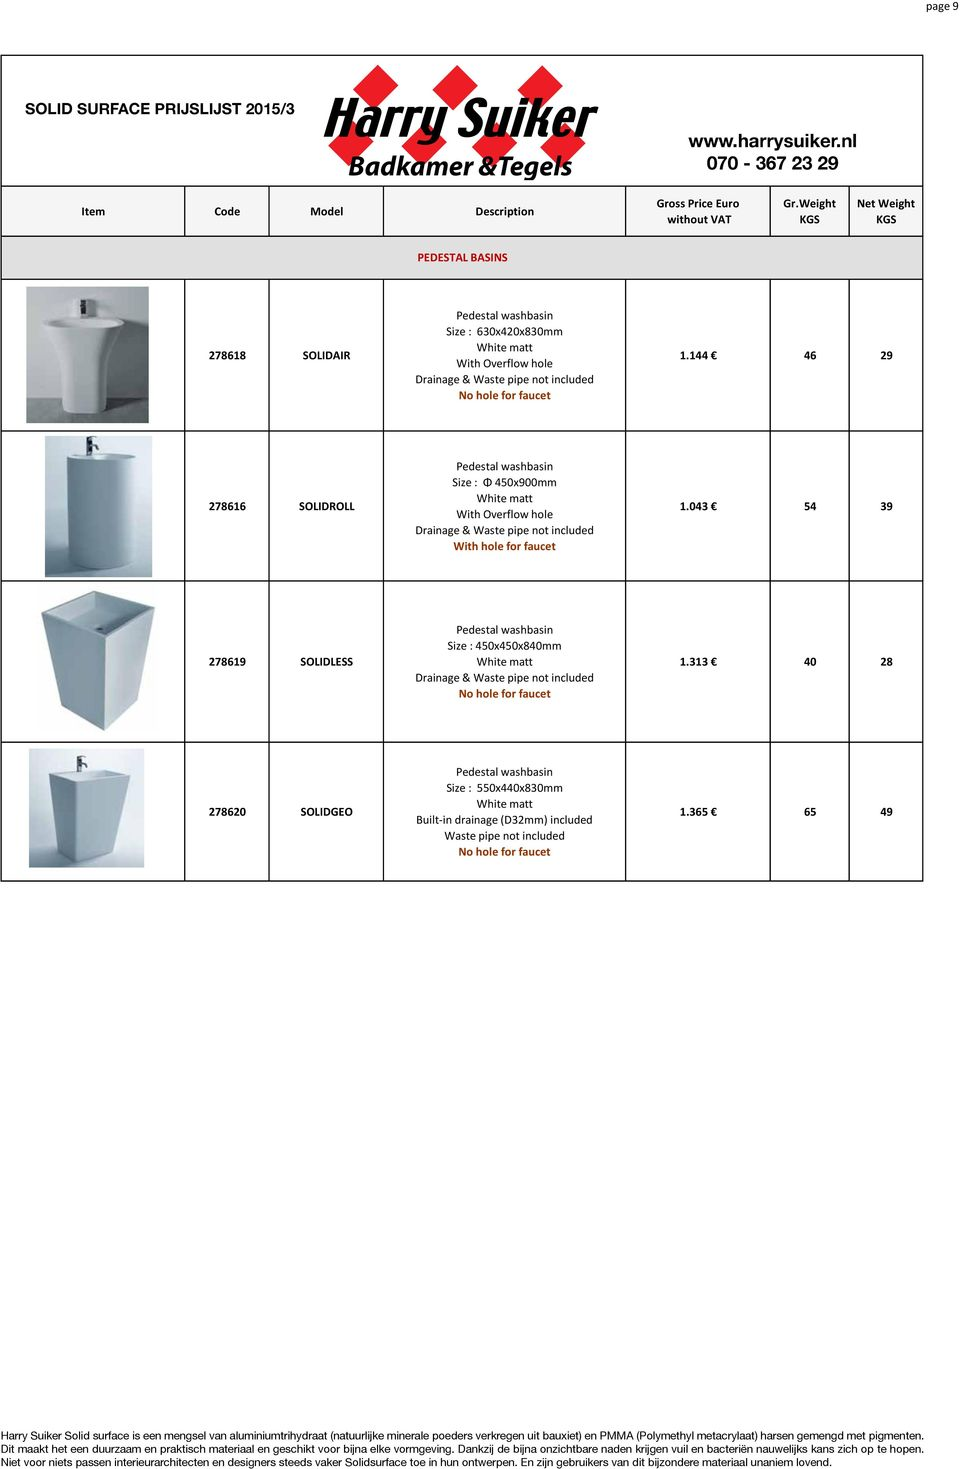 144 46 29 278616 SOLIDROLL Pedestal washbasin Size : Φ 450x900mm With Overflow hole Drainage & Waste pipe not 043 54 39